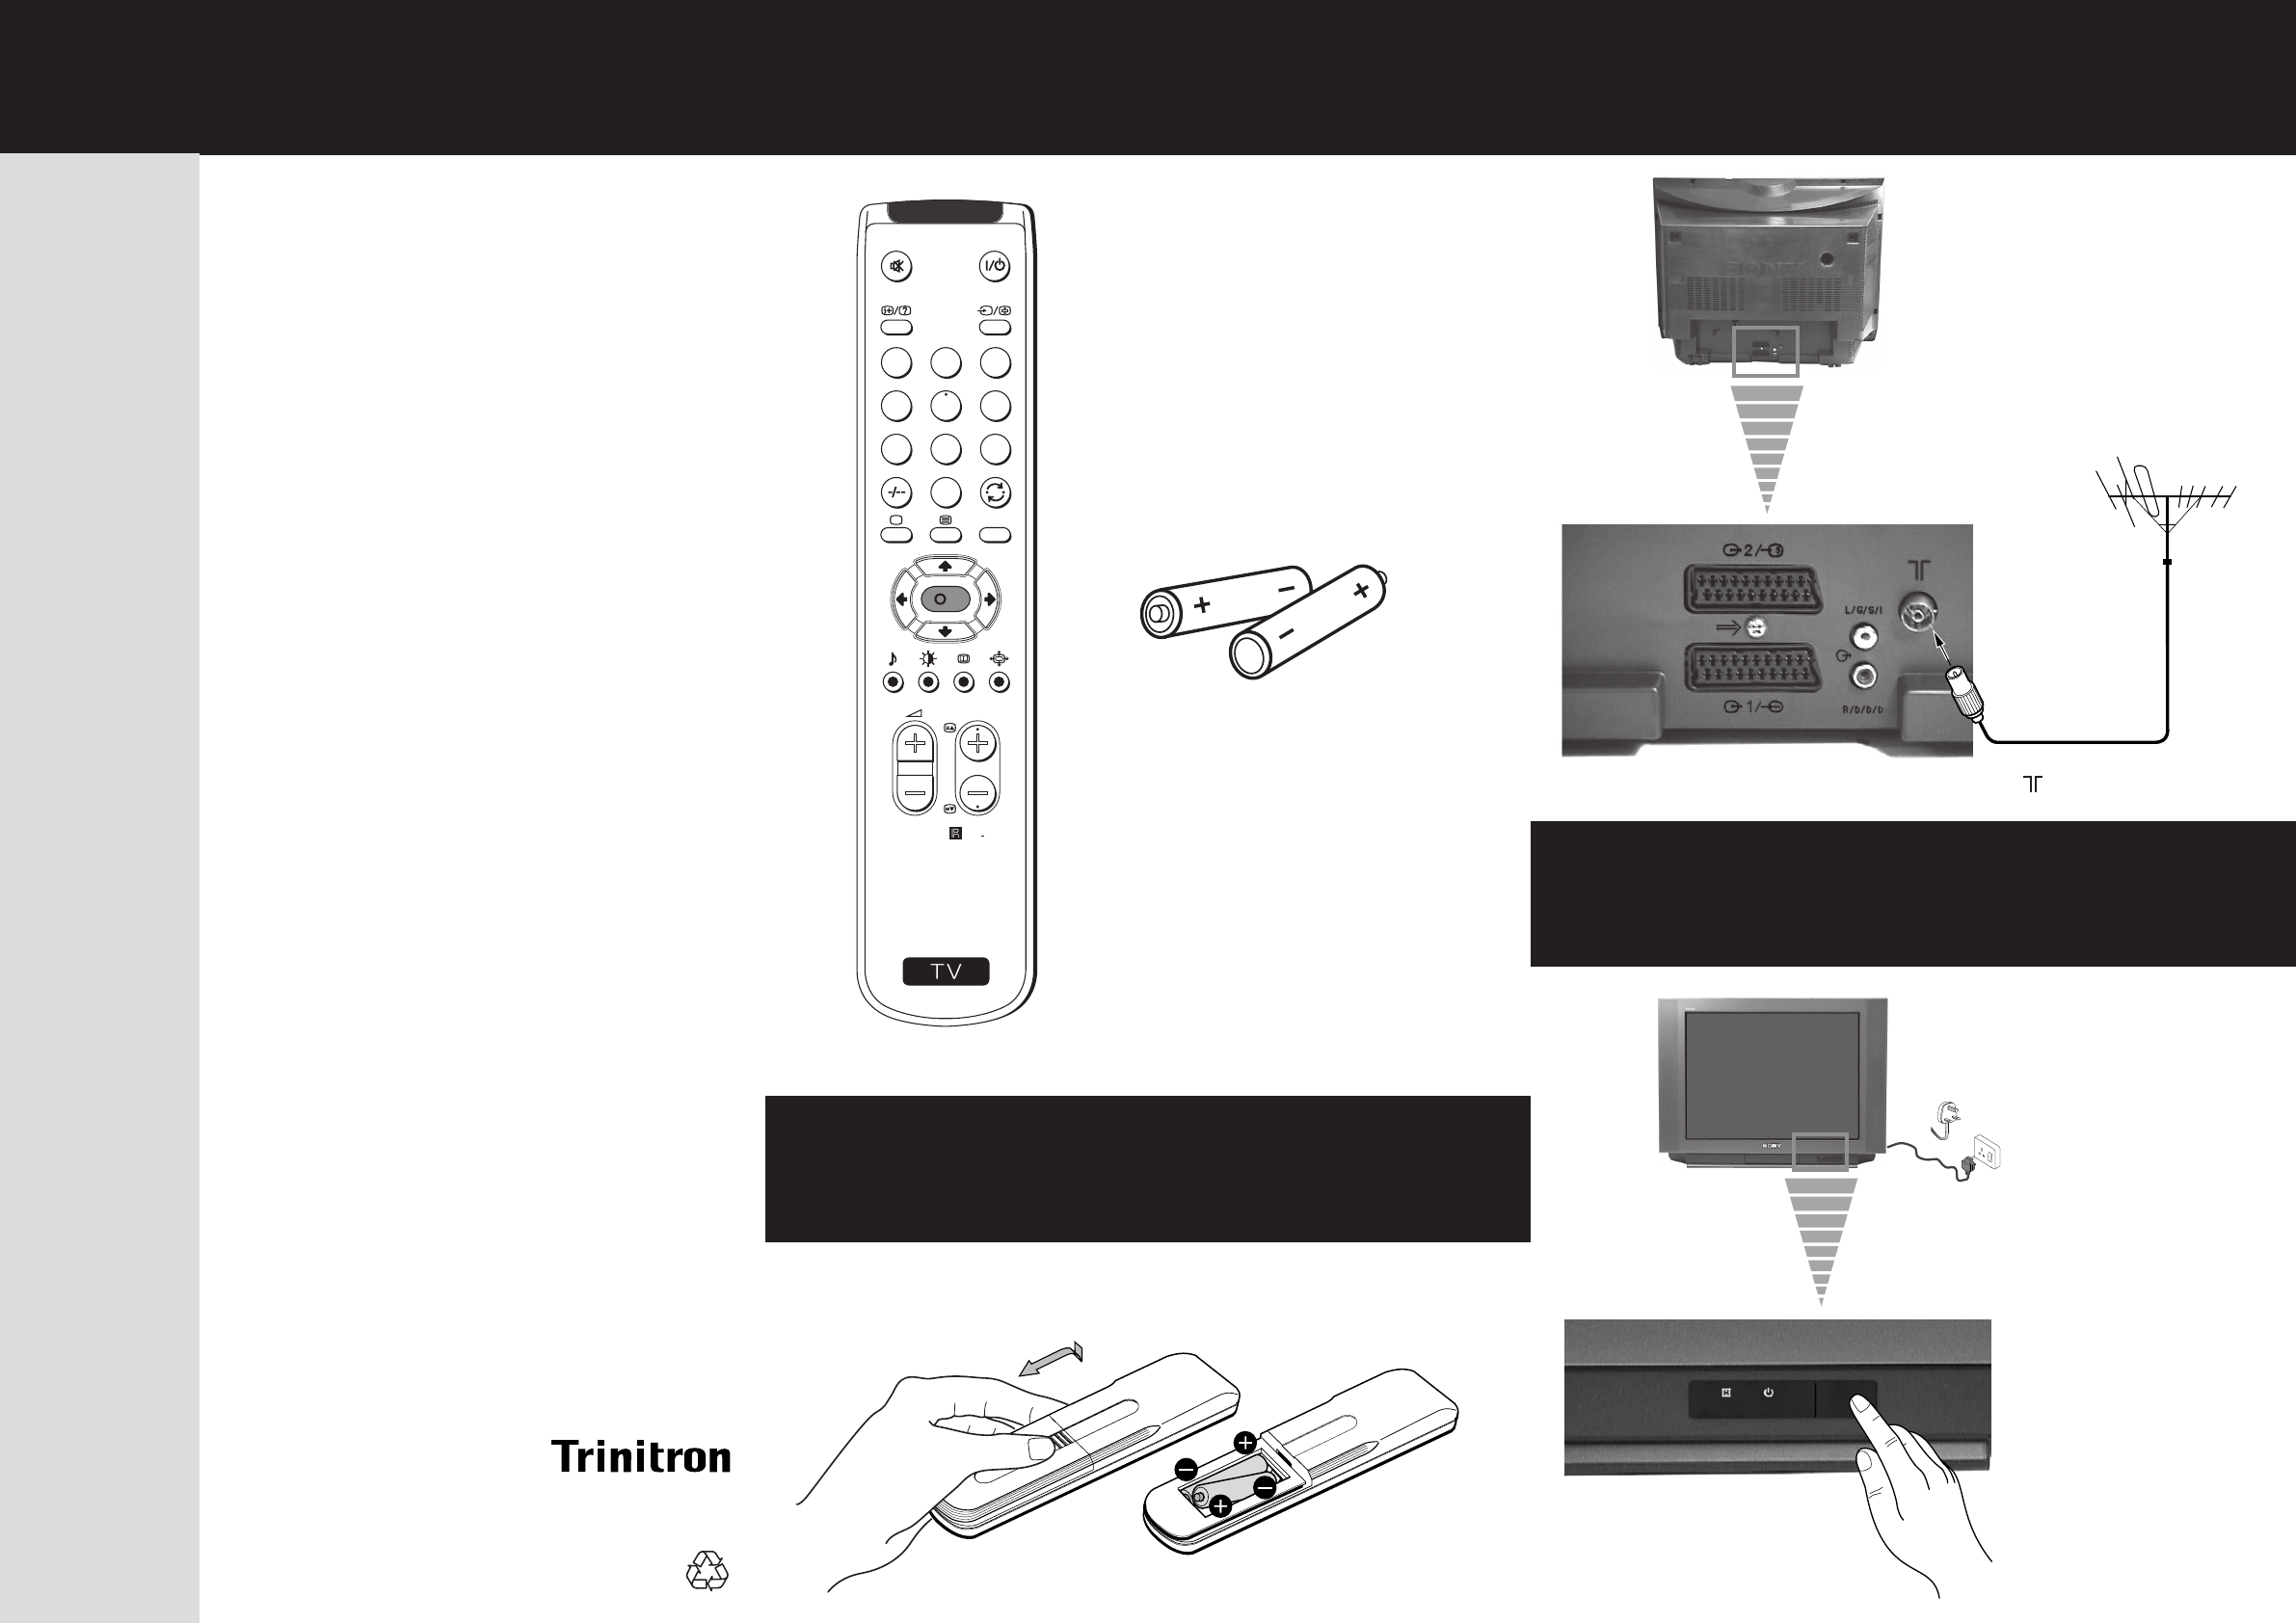 sony crt television kv 29fx20 user guide manualsonline com rh tv manualsonline com Sony Xperia Sony Operating Manuals